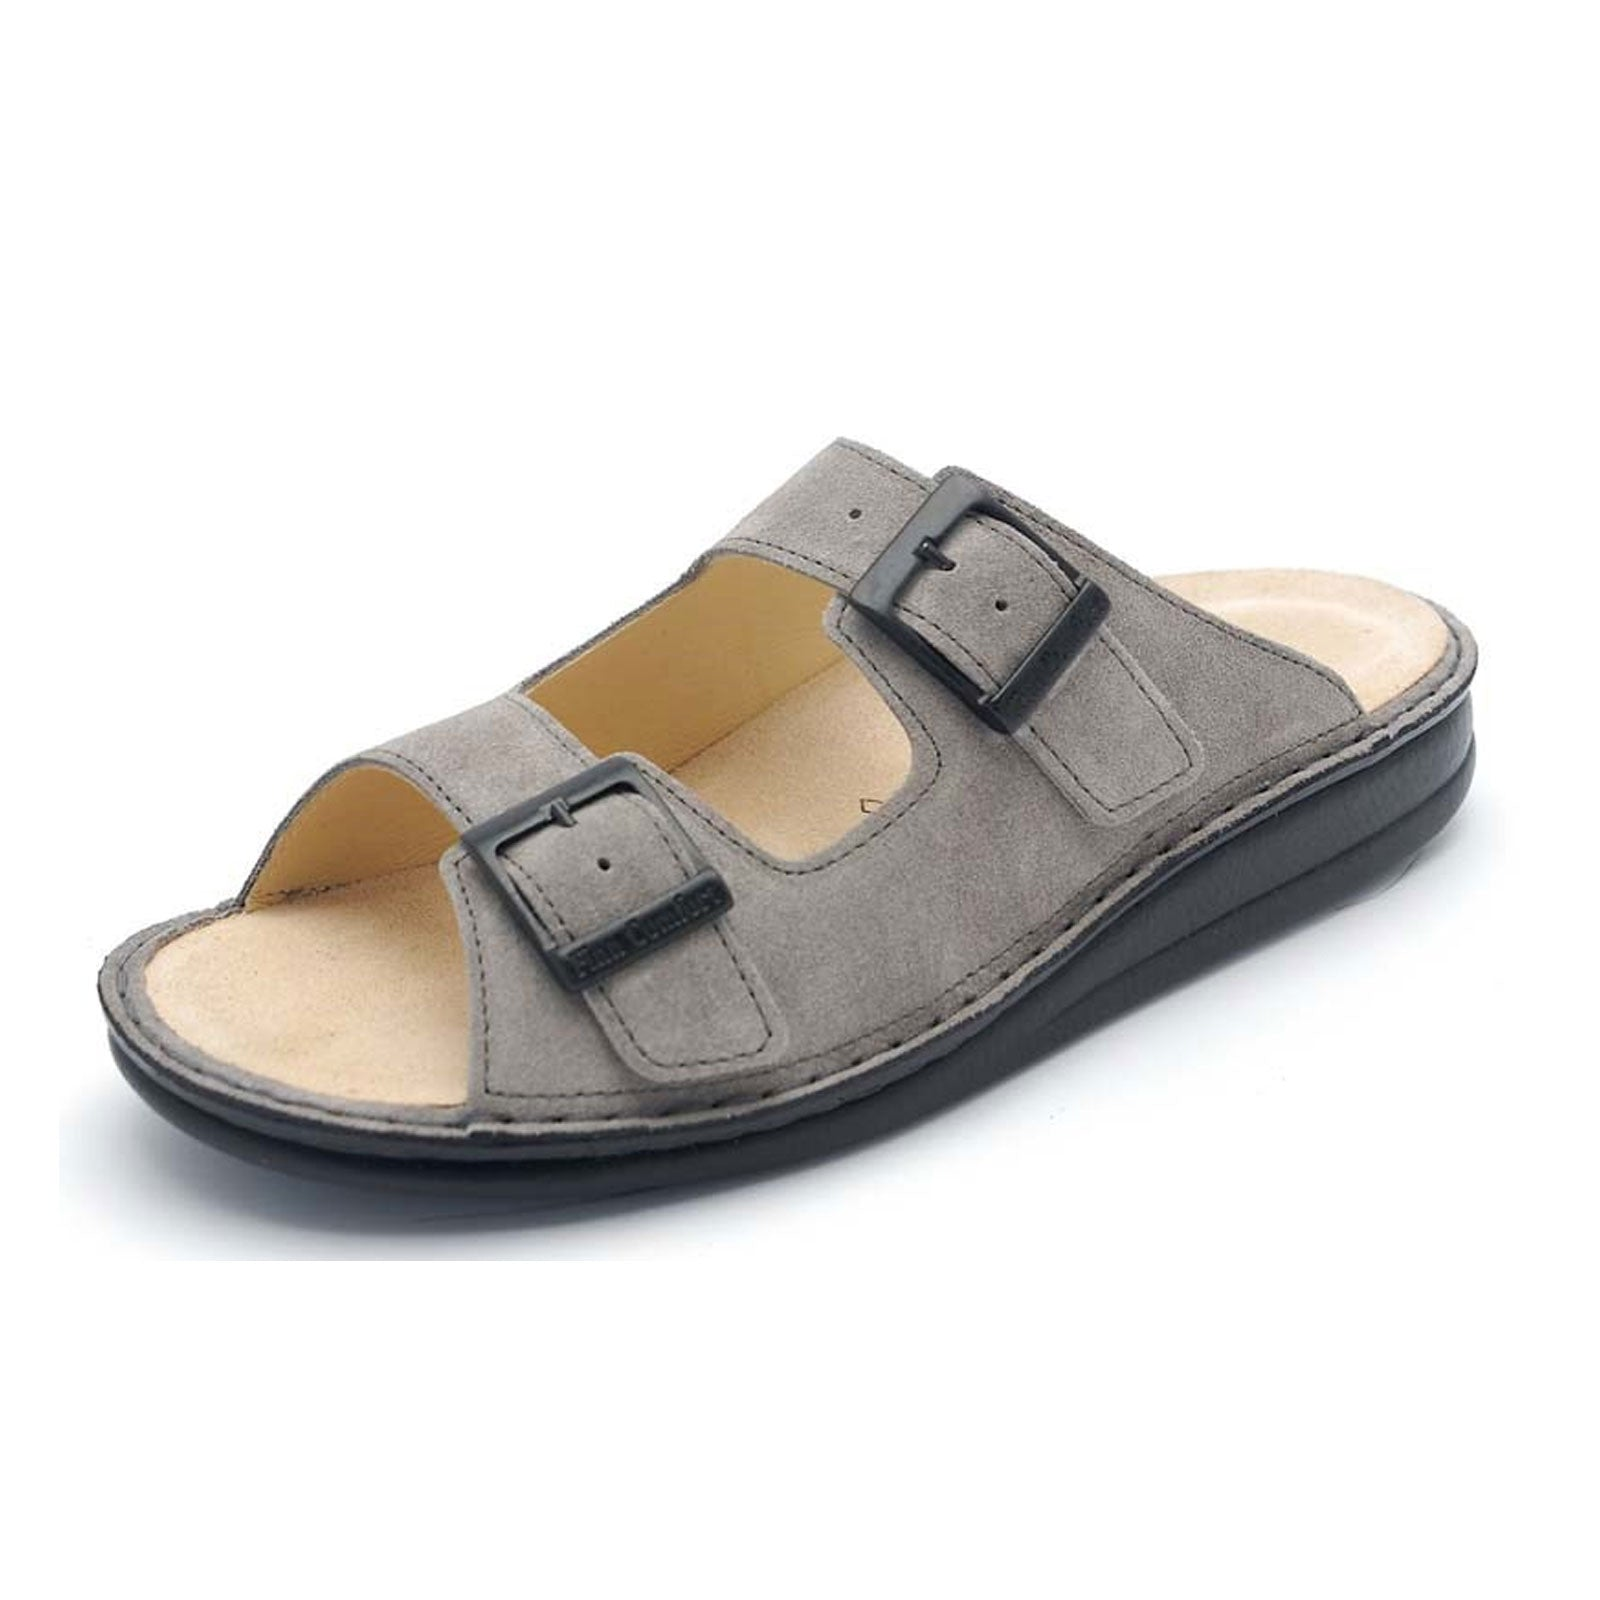 Finn Comfort Hollister (Women) - Ginger Sandals|Slide Sandals - The Heel Shoe Fitters